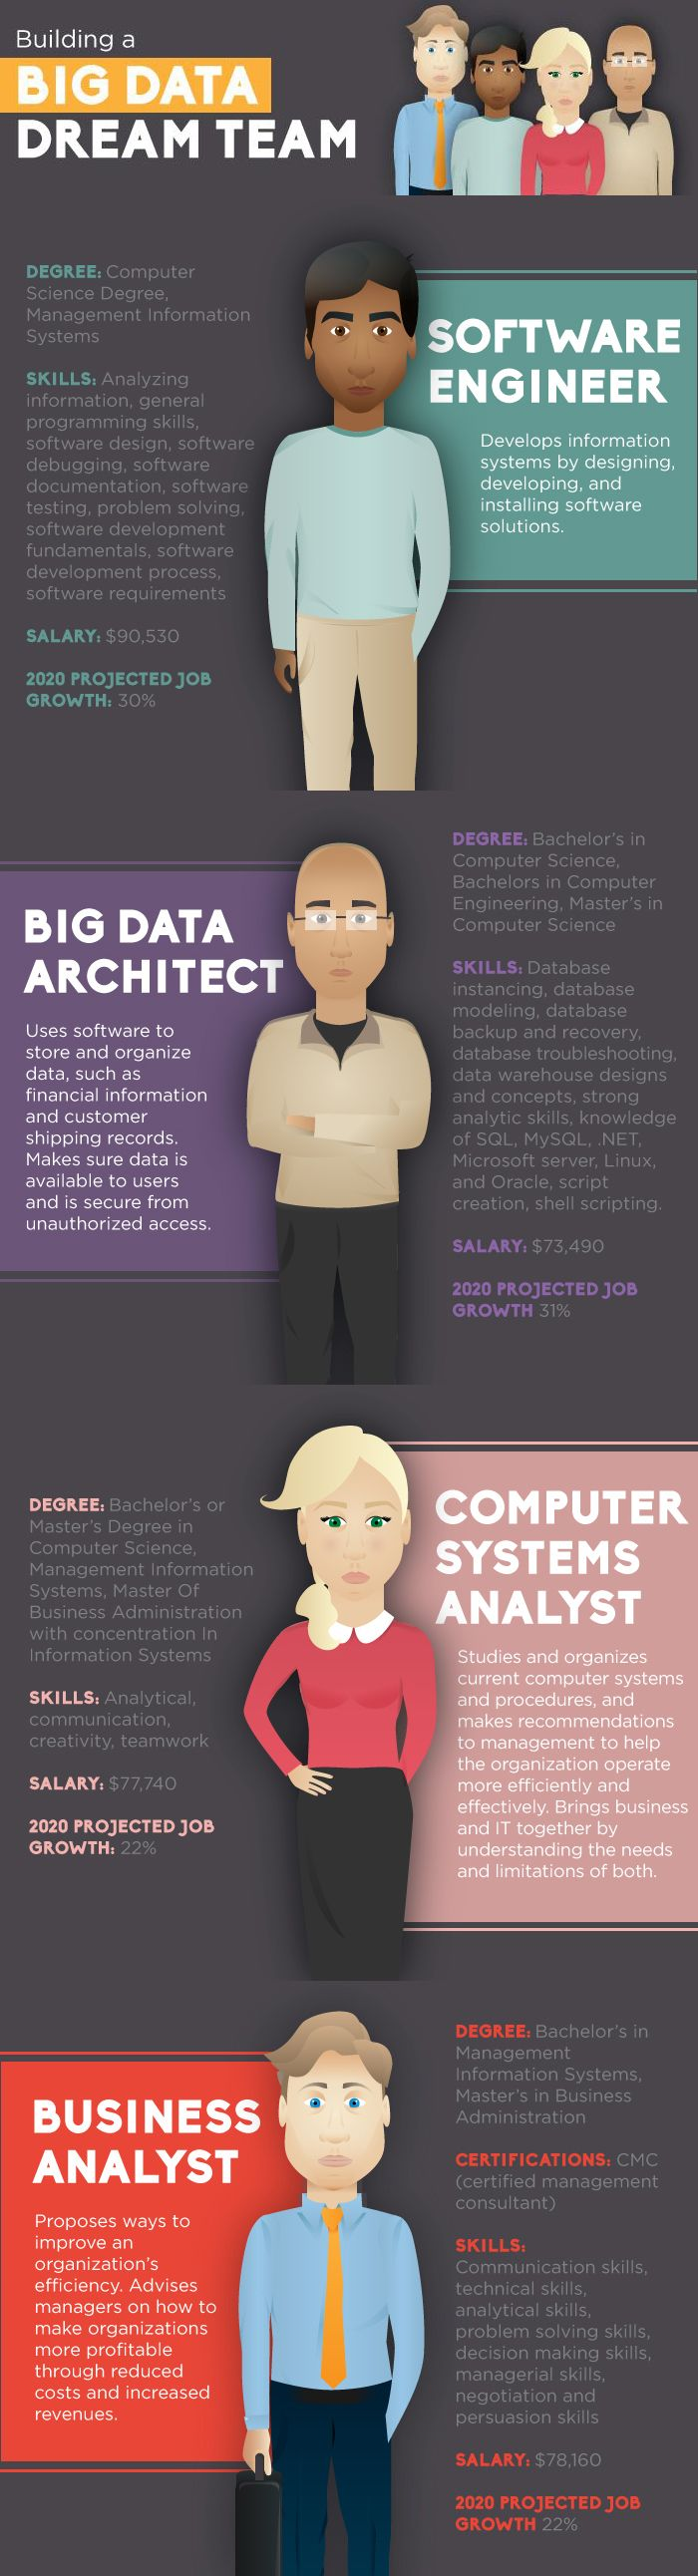 Building A Big Data Dream Team TodayS Specialists Must Have